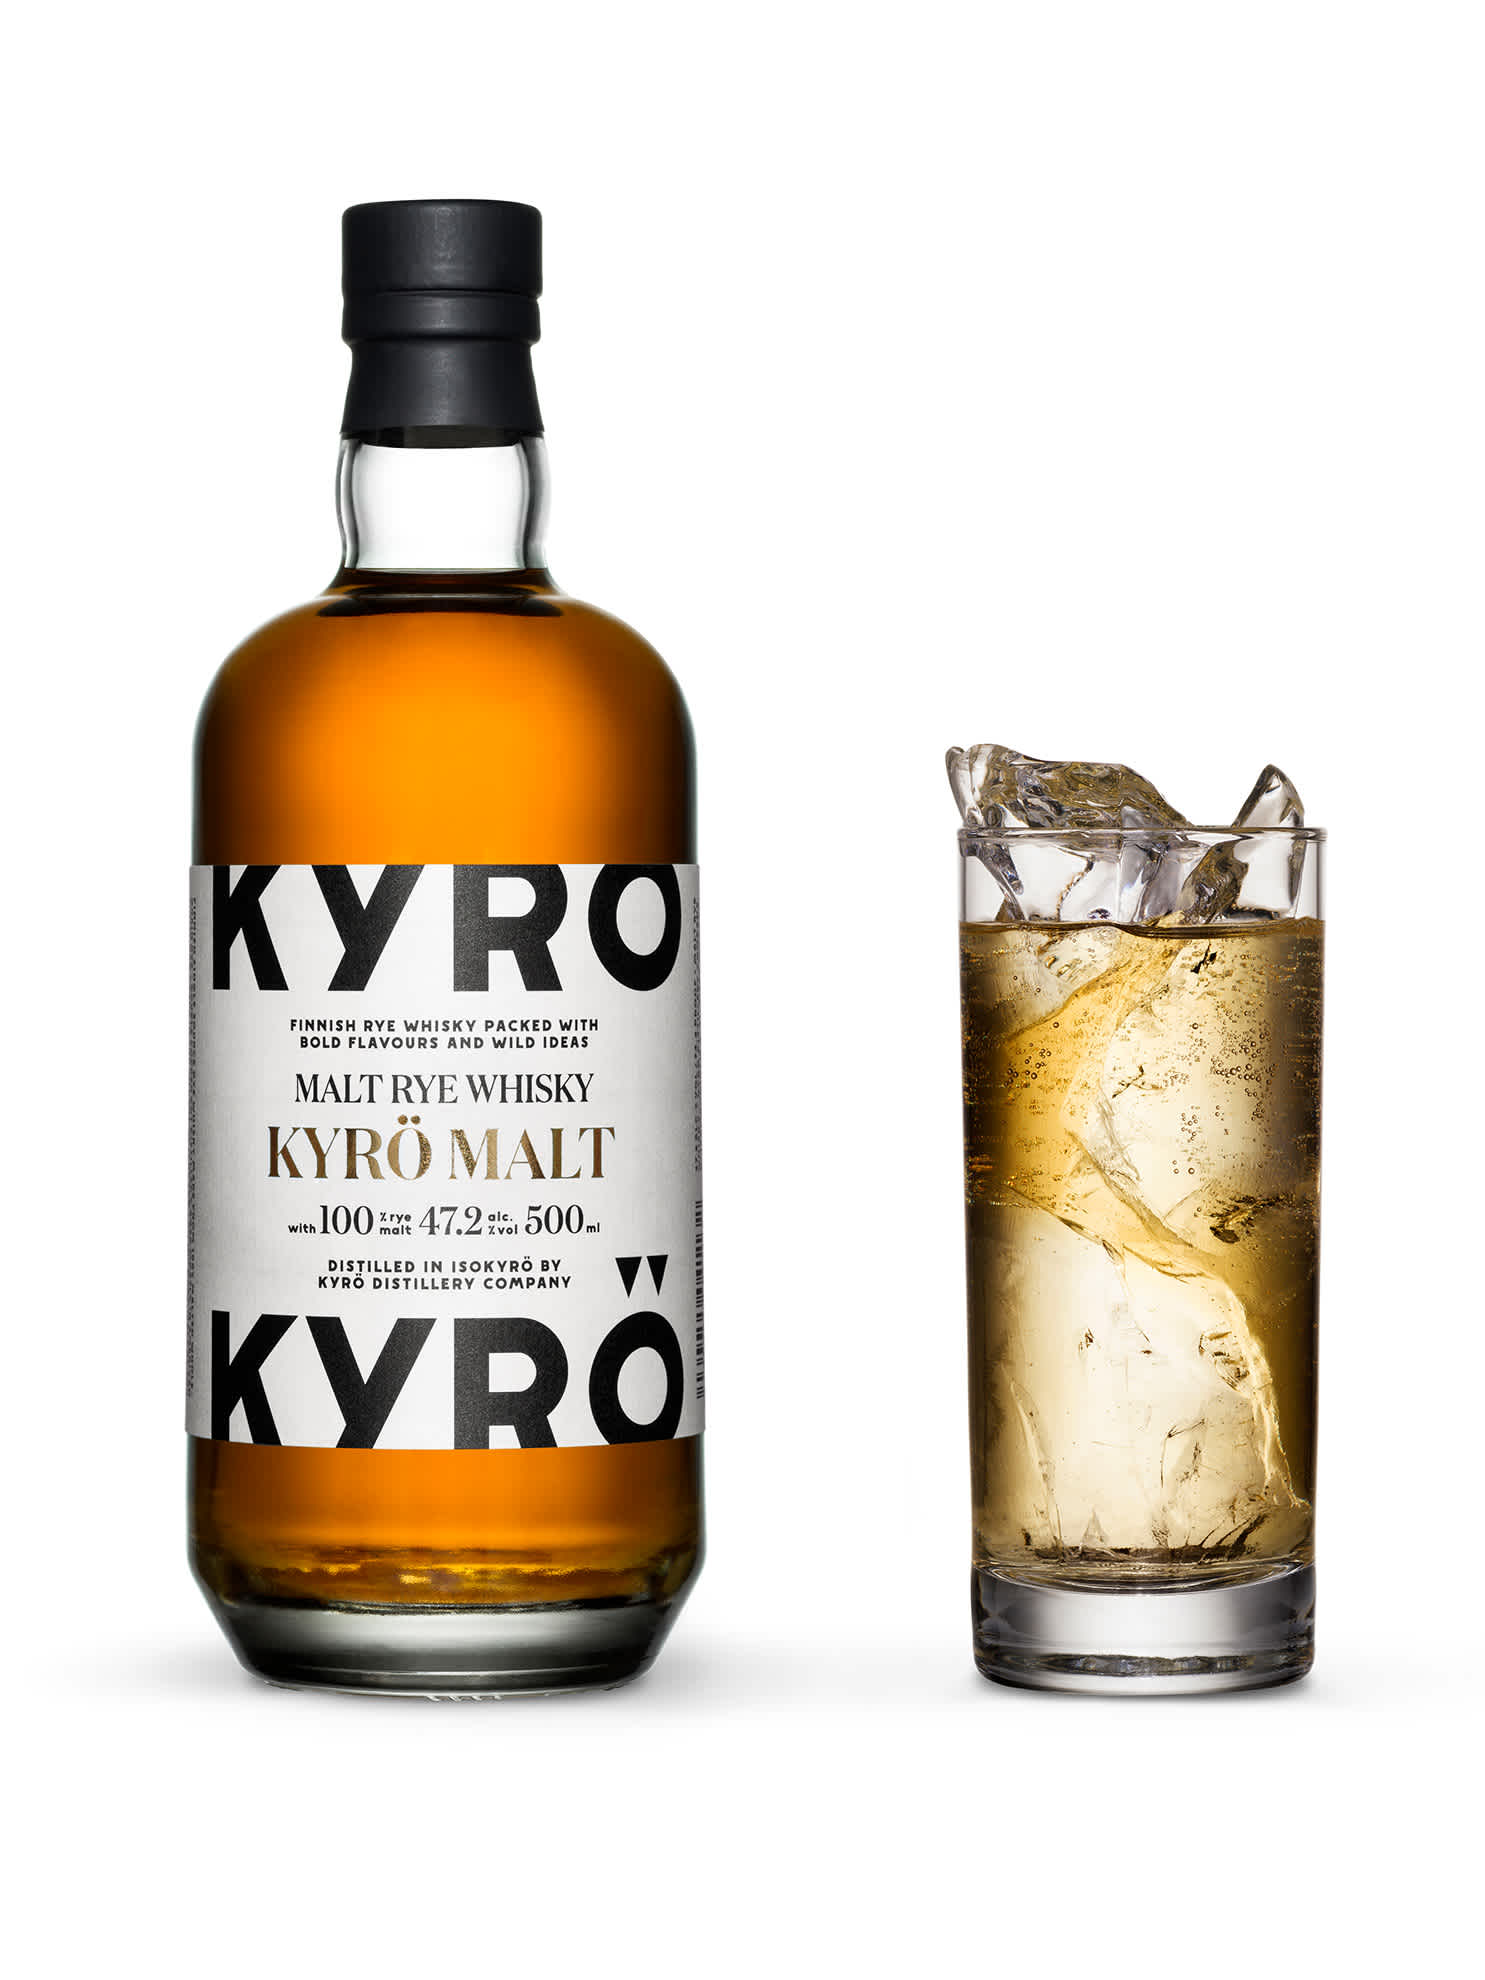 500ml bottle of Kyrö Malt Rye Whisky next to a highball glass filled with hand-cut shards of ice, soda water, lemon zest, and whisky. Vertical.